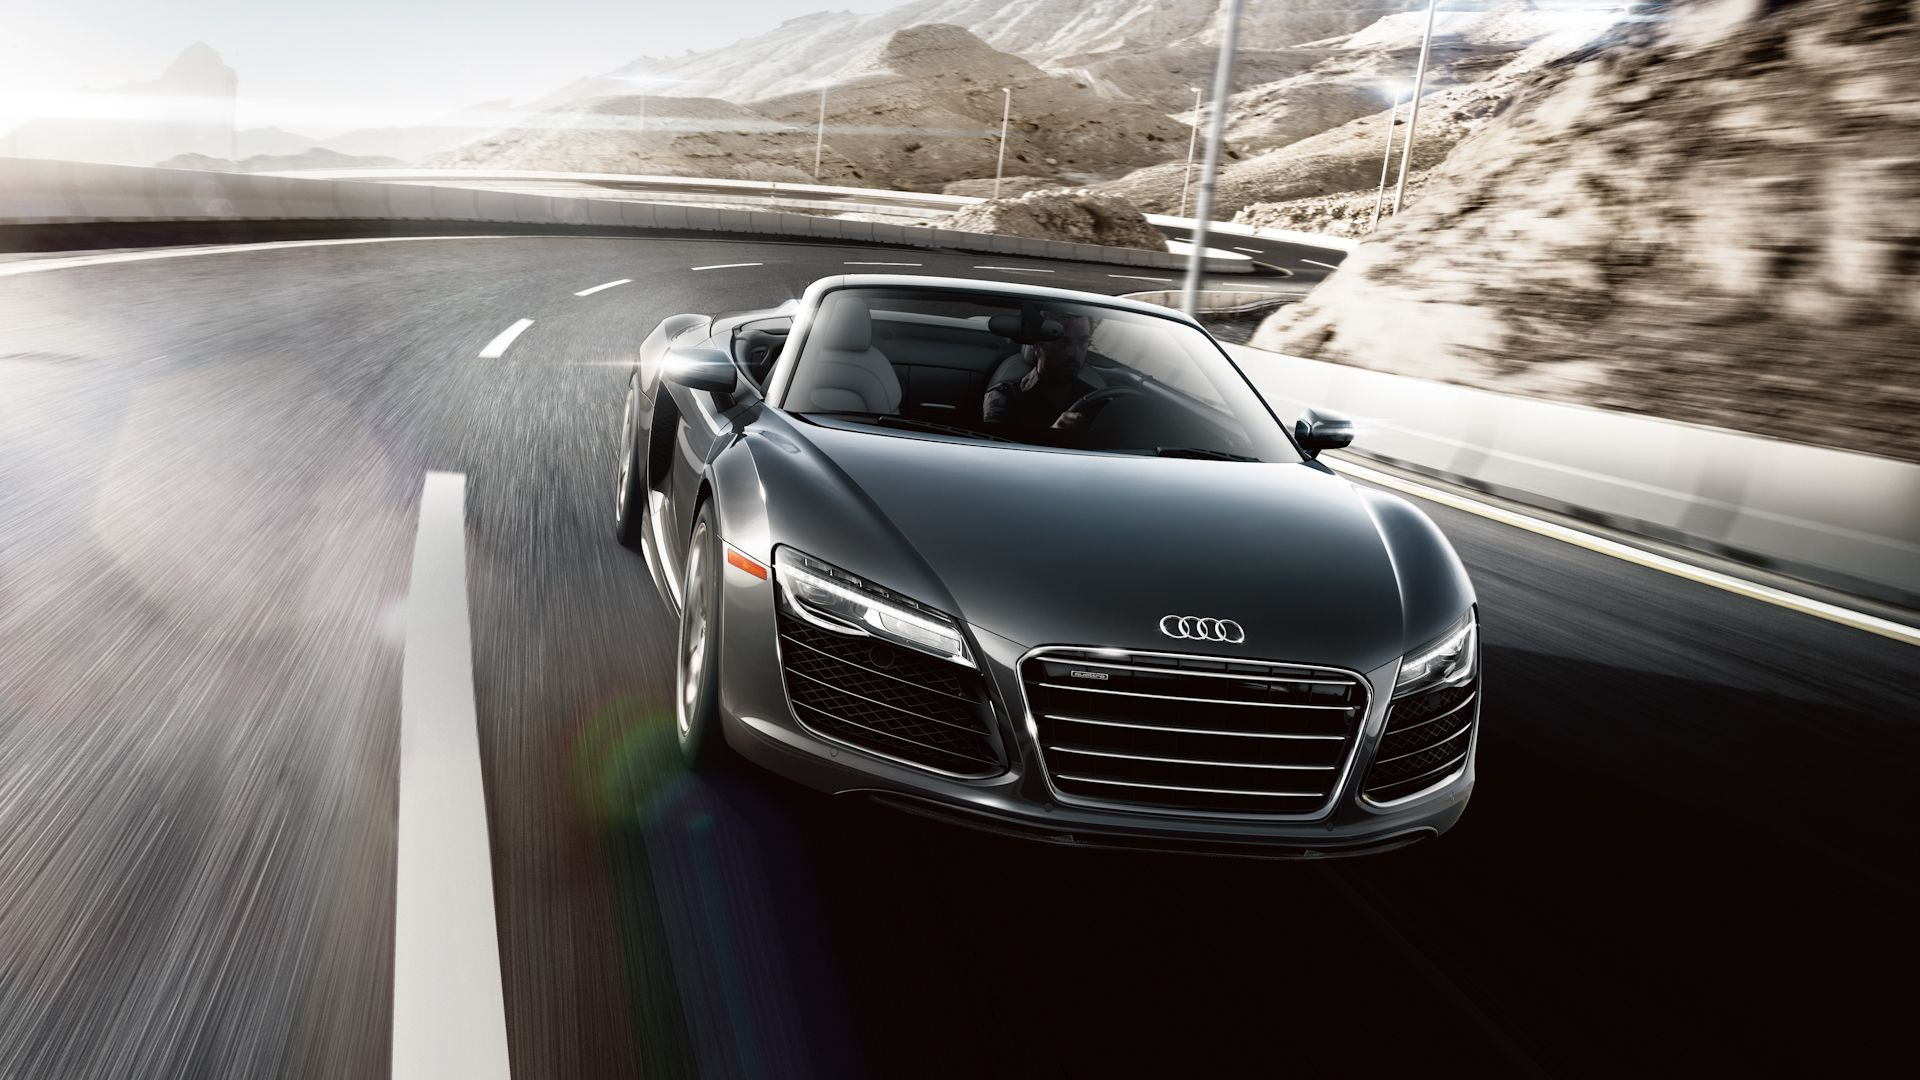 2015 audi r8 v10 spyder wallpaper